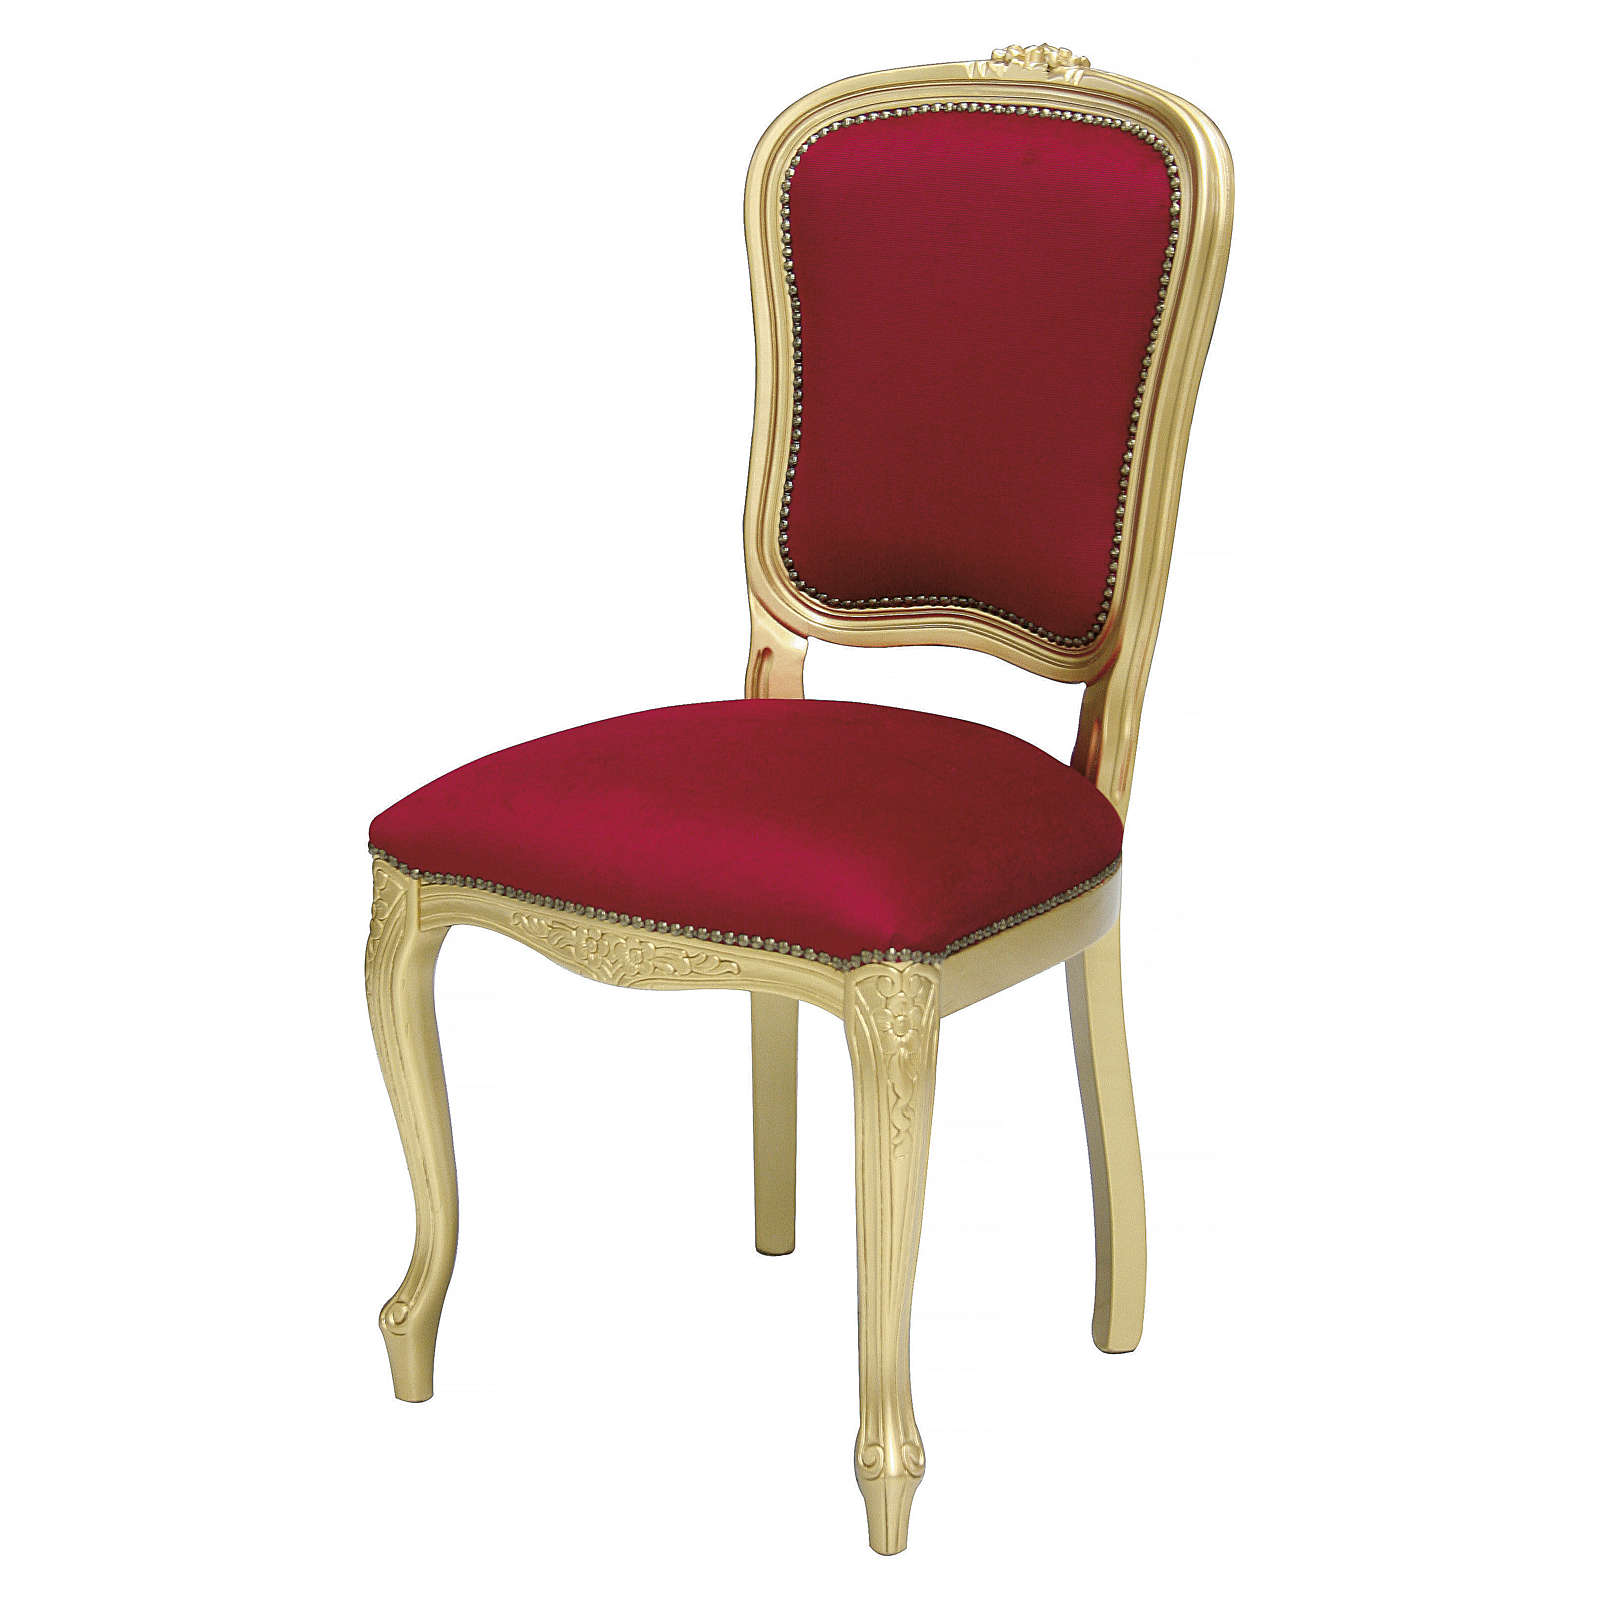 Chair in walnut wood & gold leaf, red velvet baroque style 4